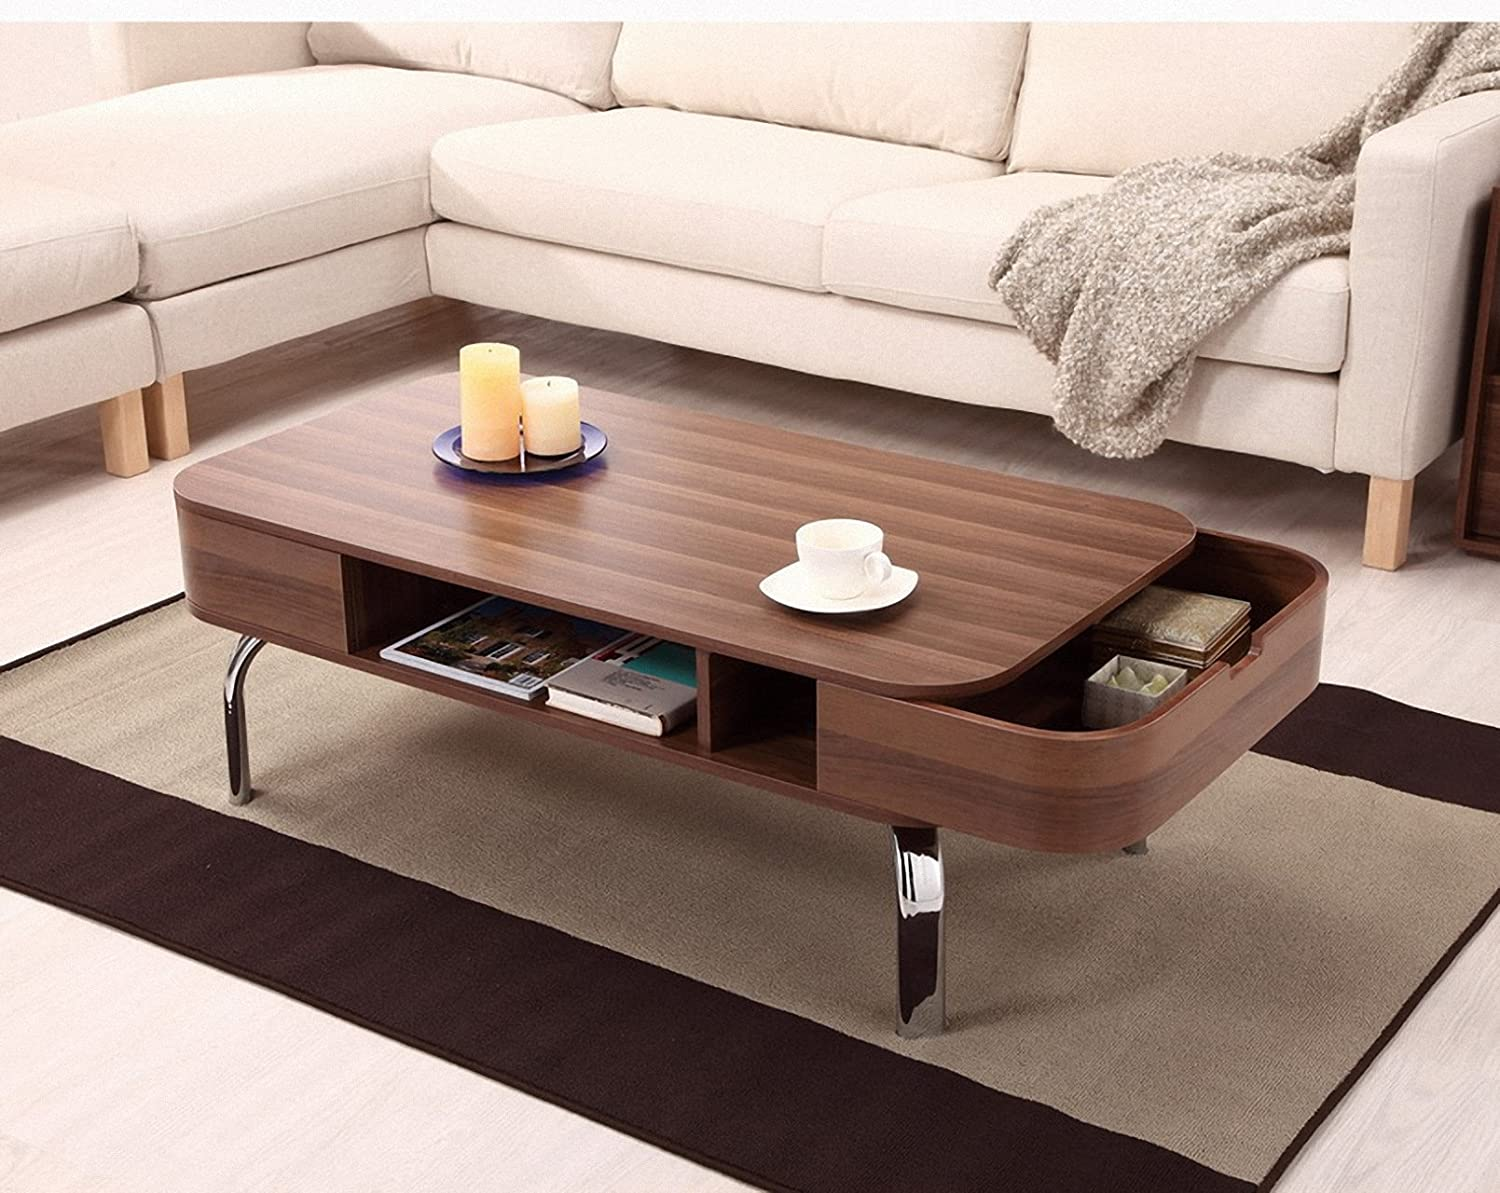 Details. Contemporary, Minimalist Design Luxer Coffee Table ...